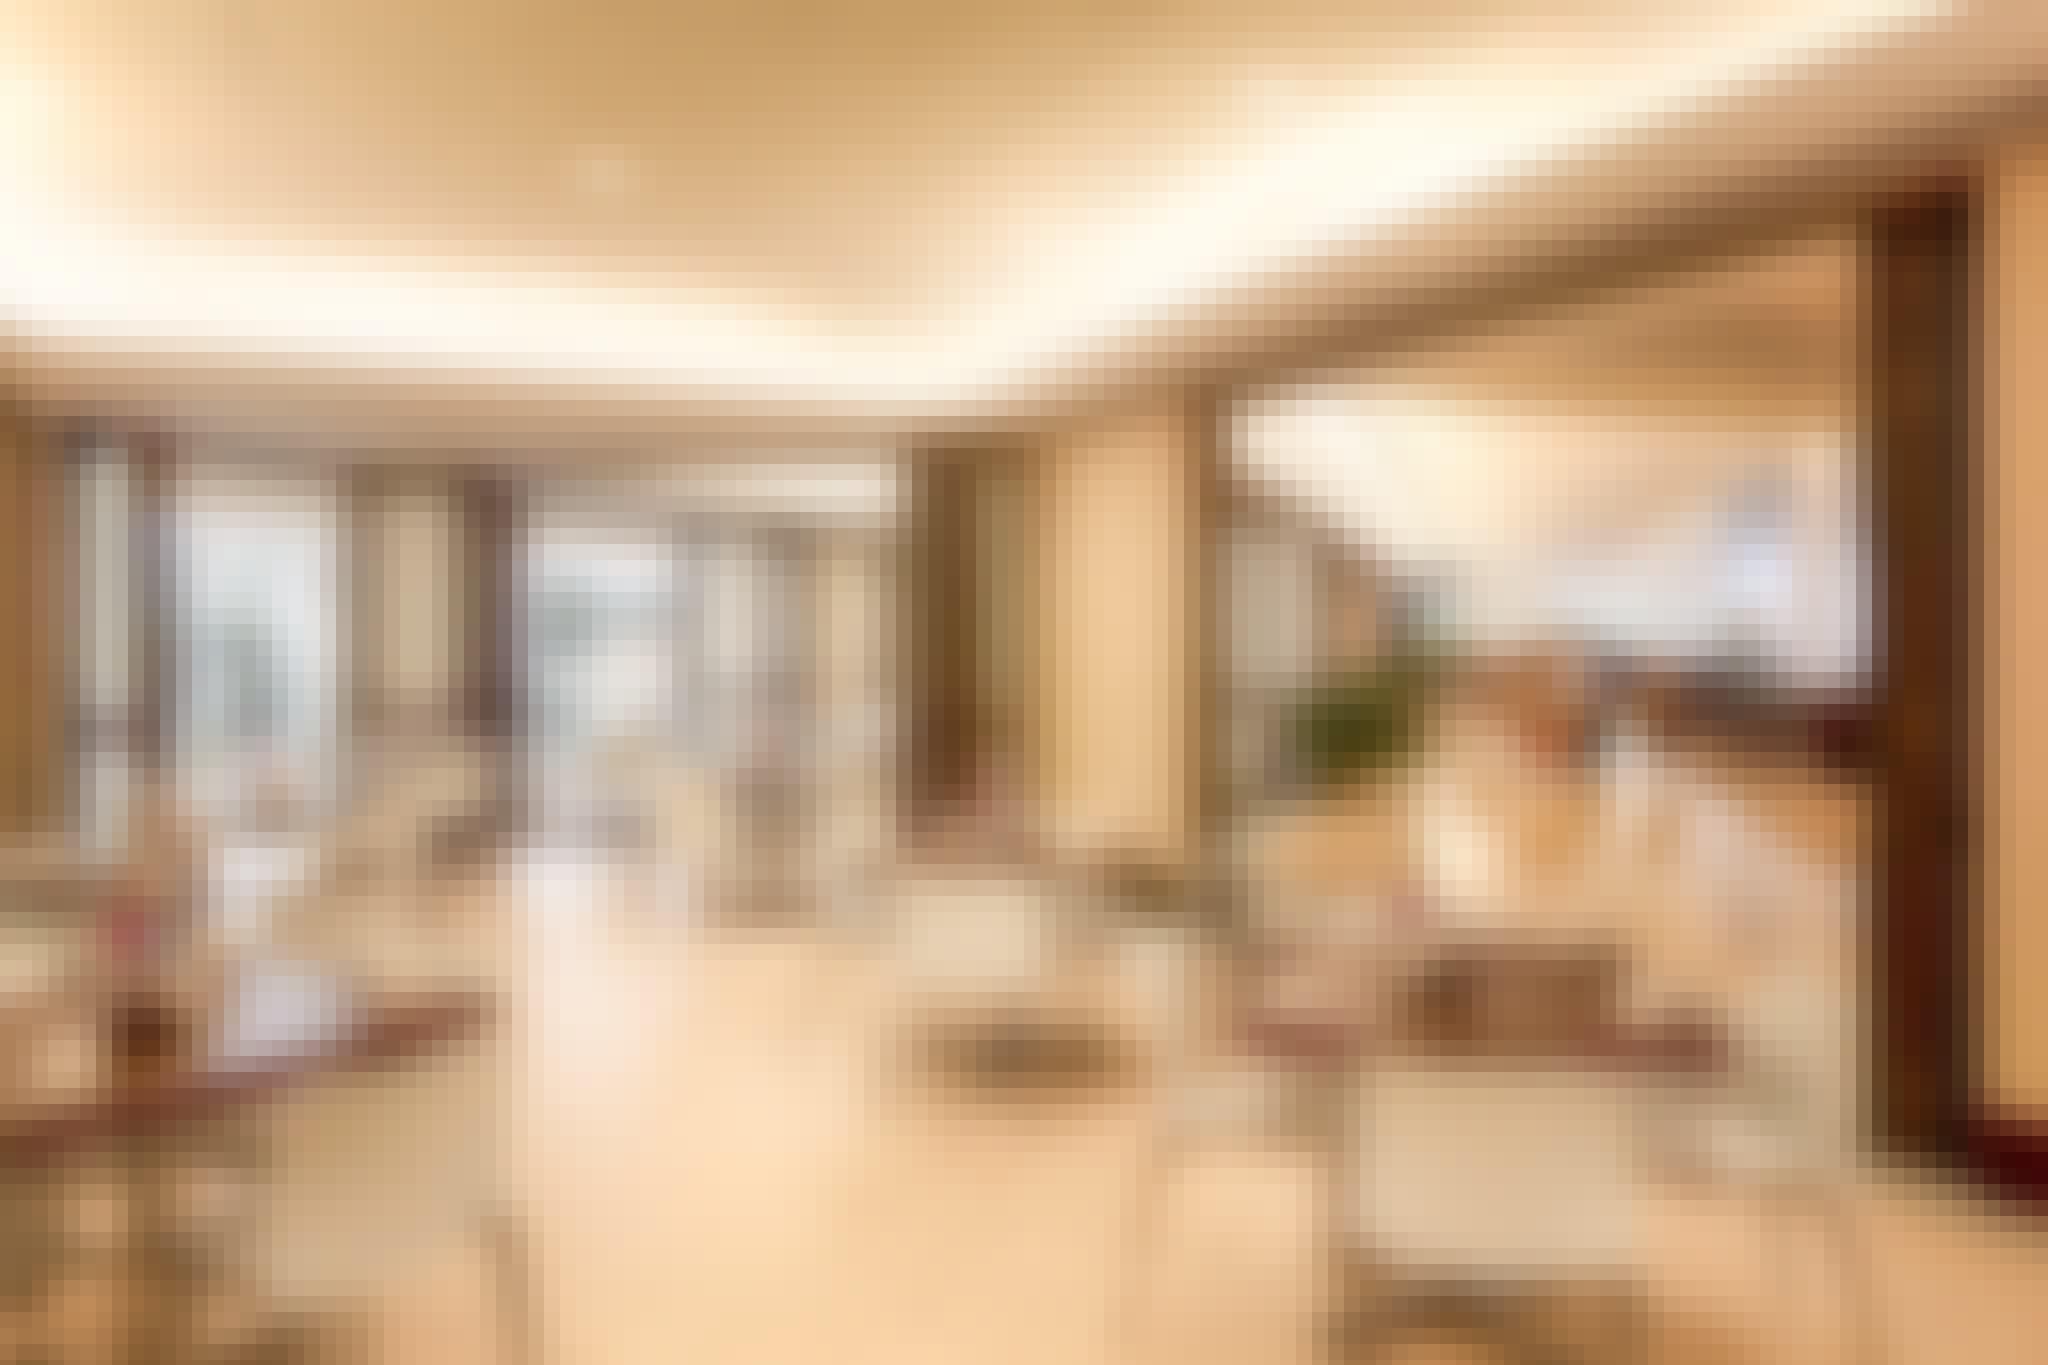 interior commercial glass walls in hotel breakfast area